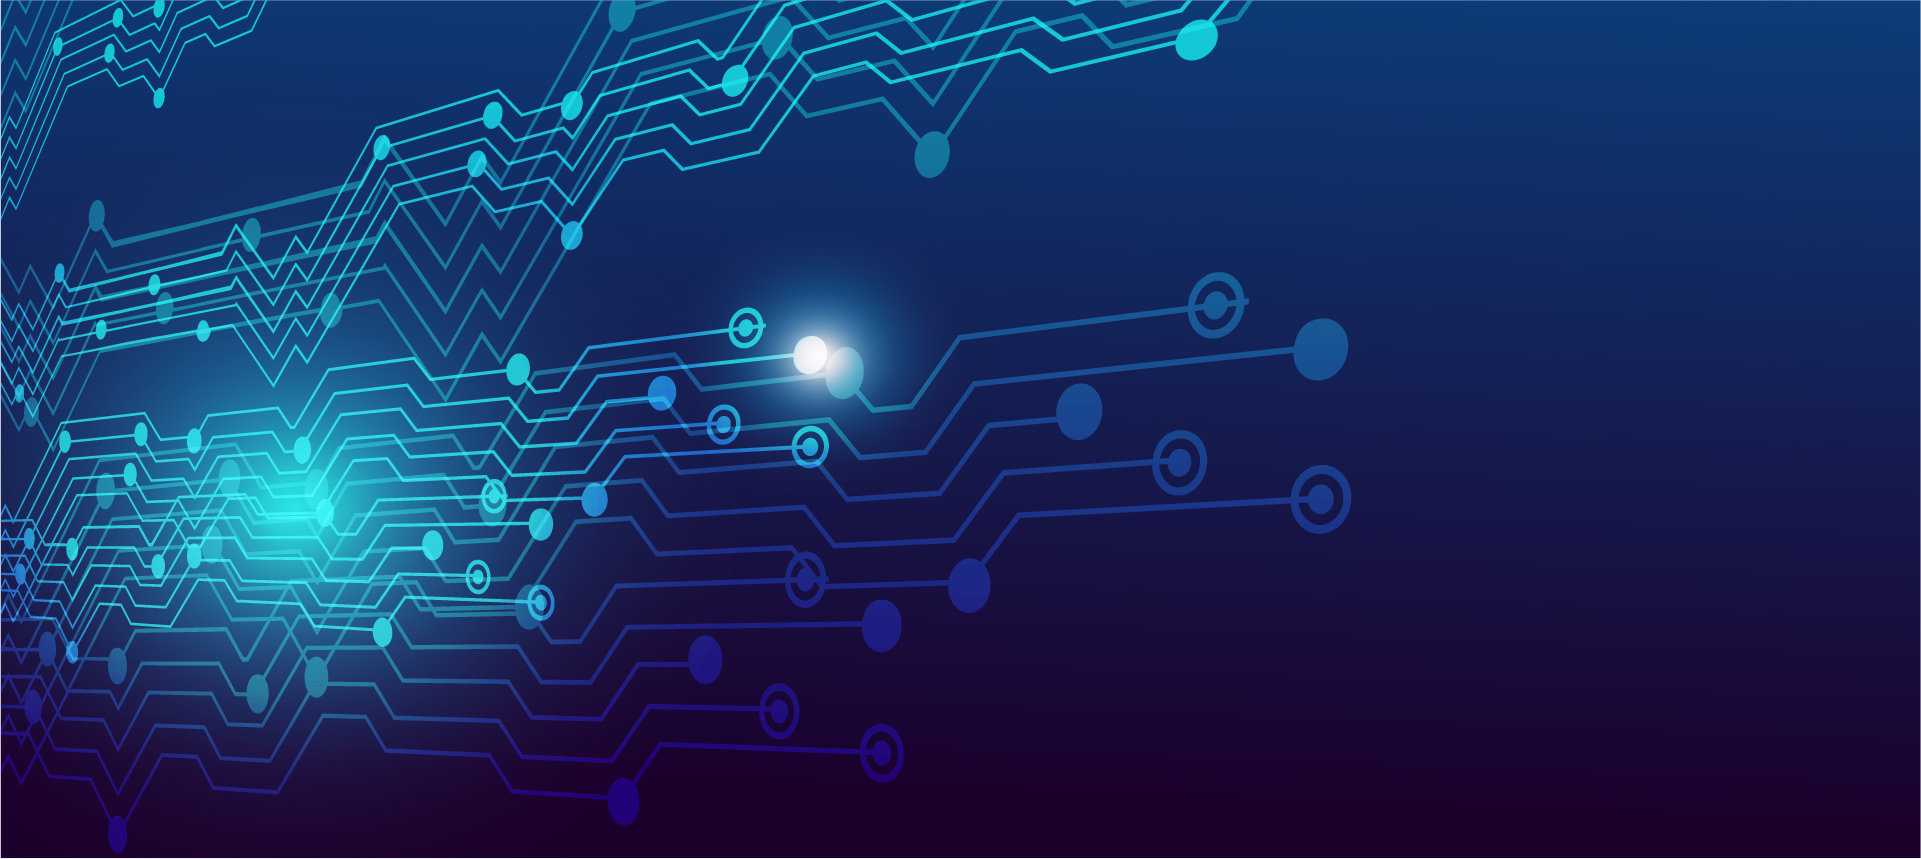 Blue Circuit Board Background Image For Free Vector Ai Graphics Download